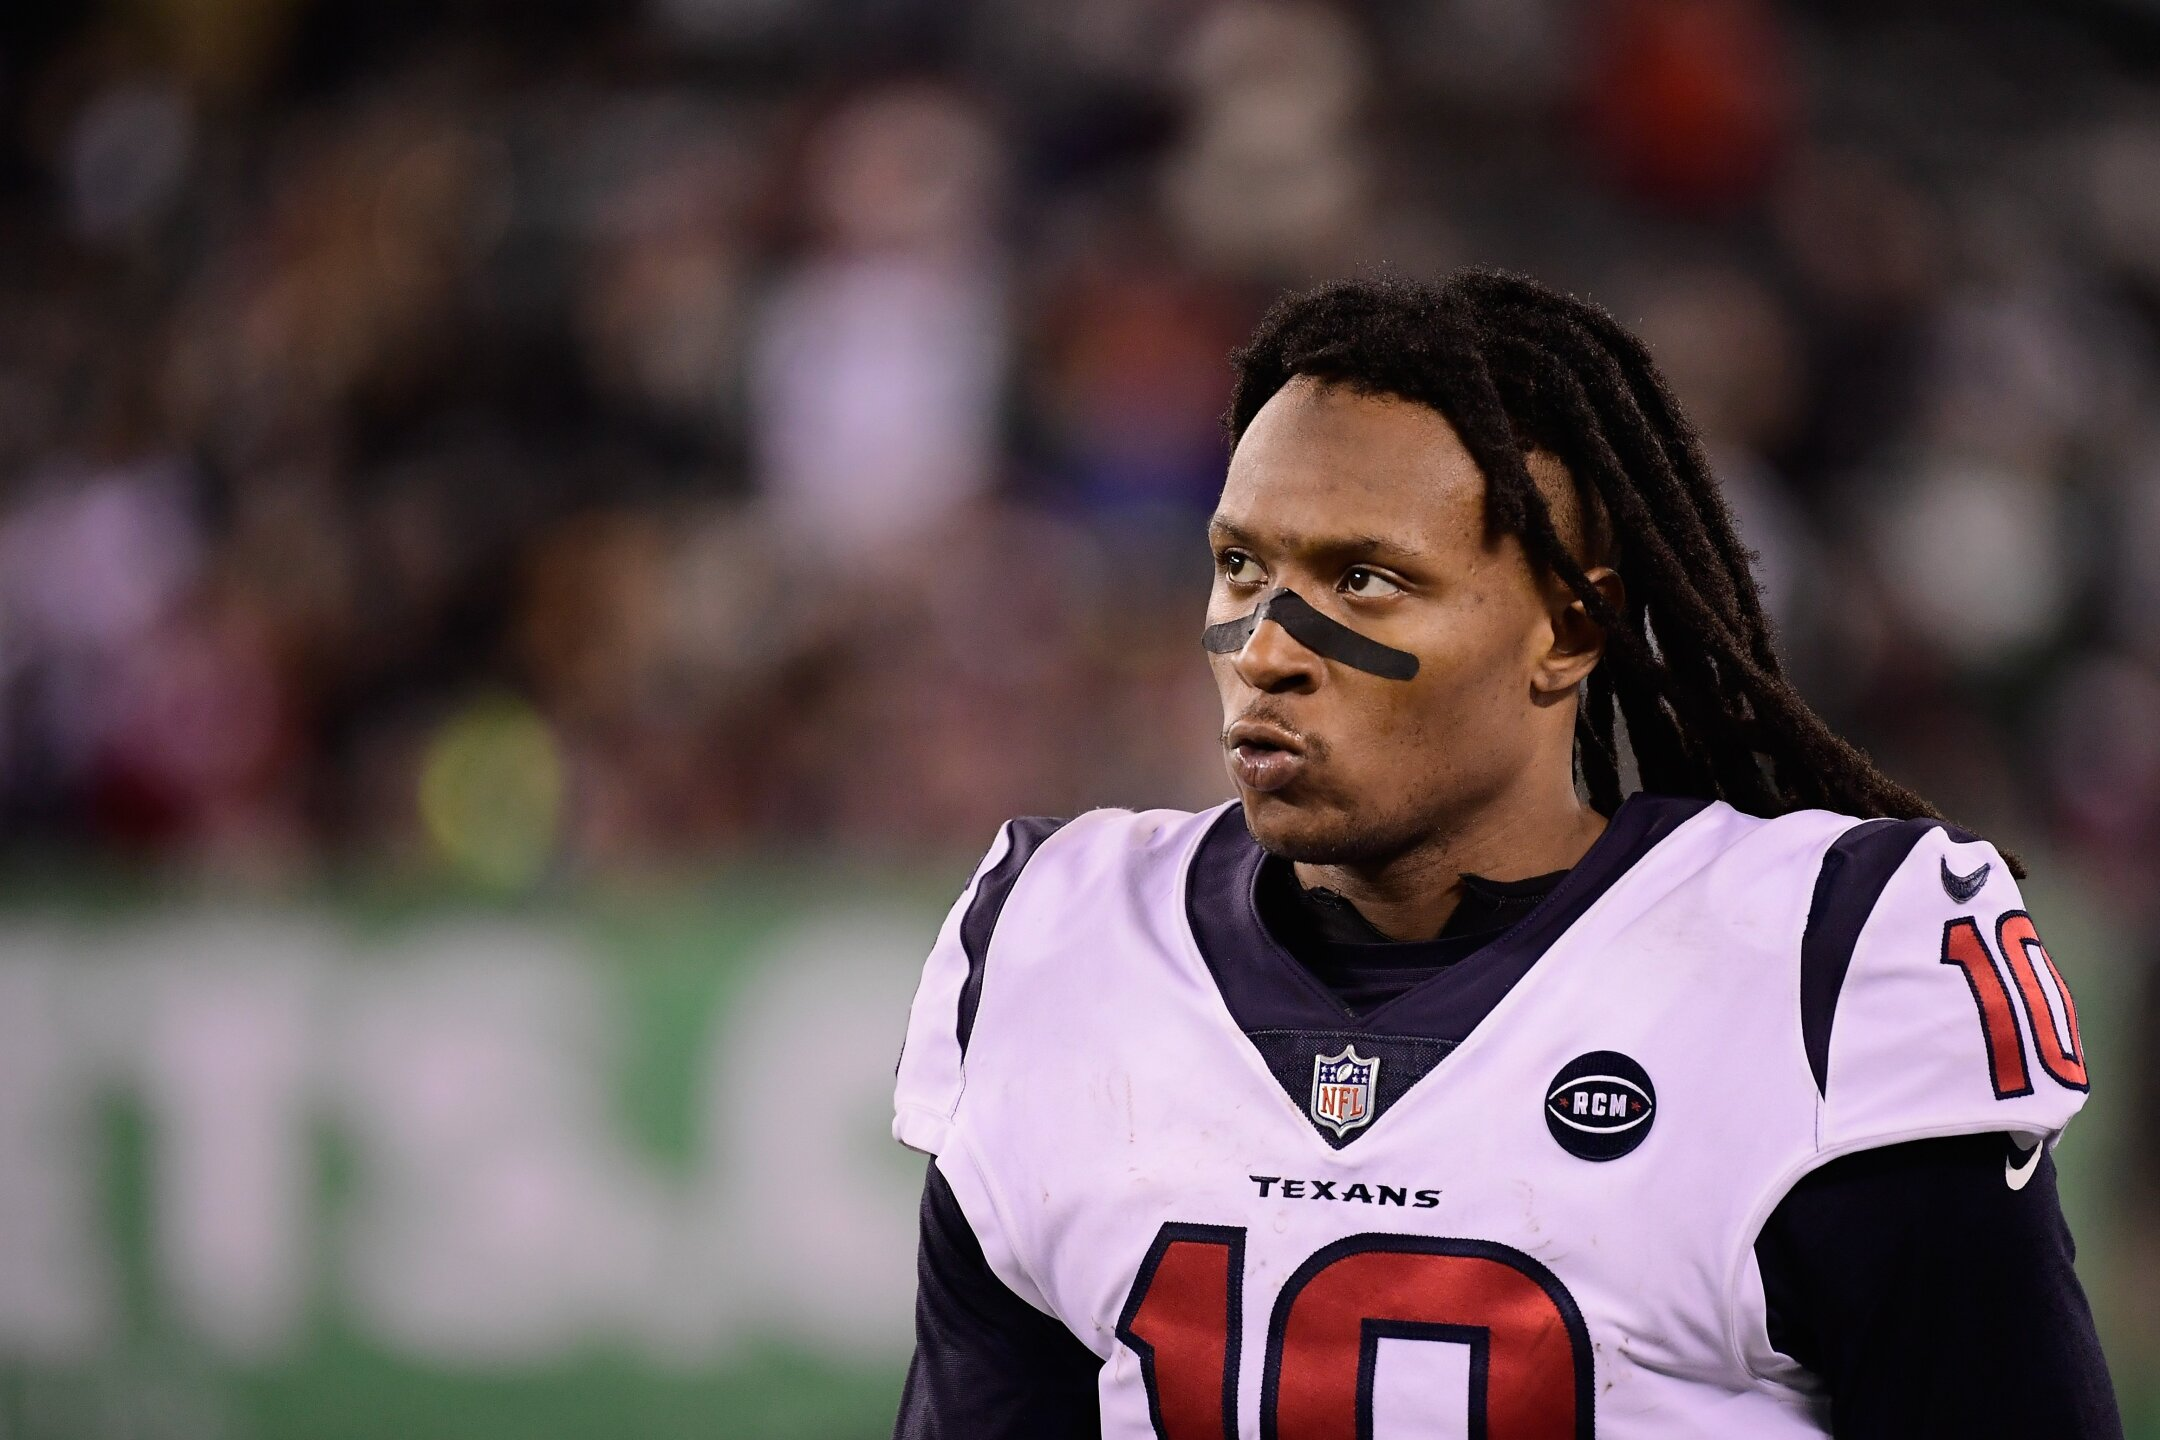 Photos: DeAndre Hopkins pledges playoff game check to family of 7-year-old murdered in Houston drive-by